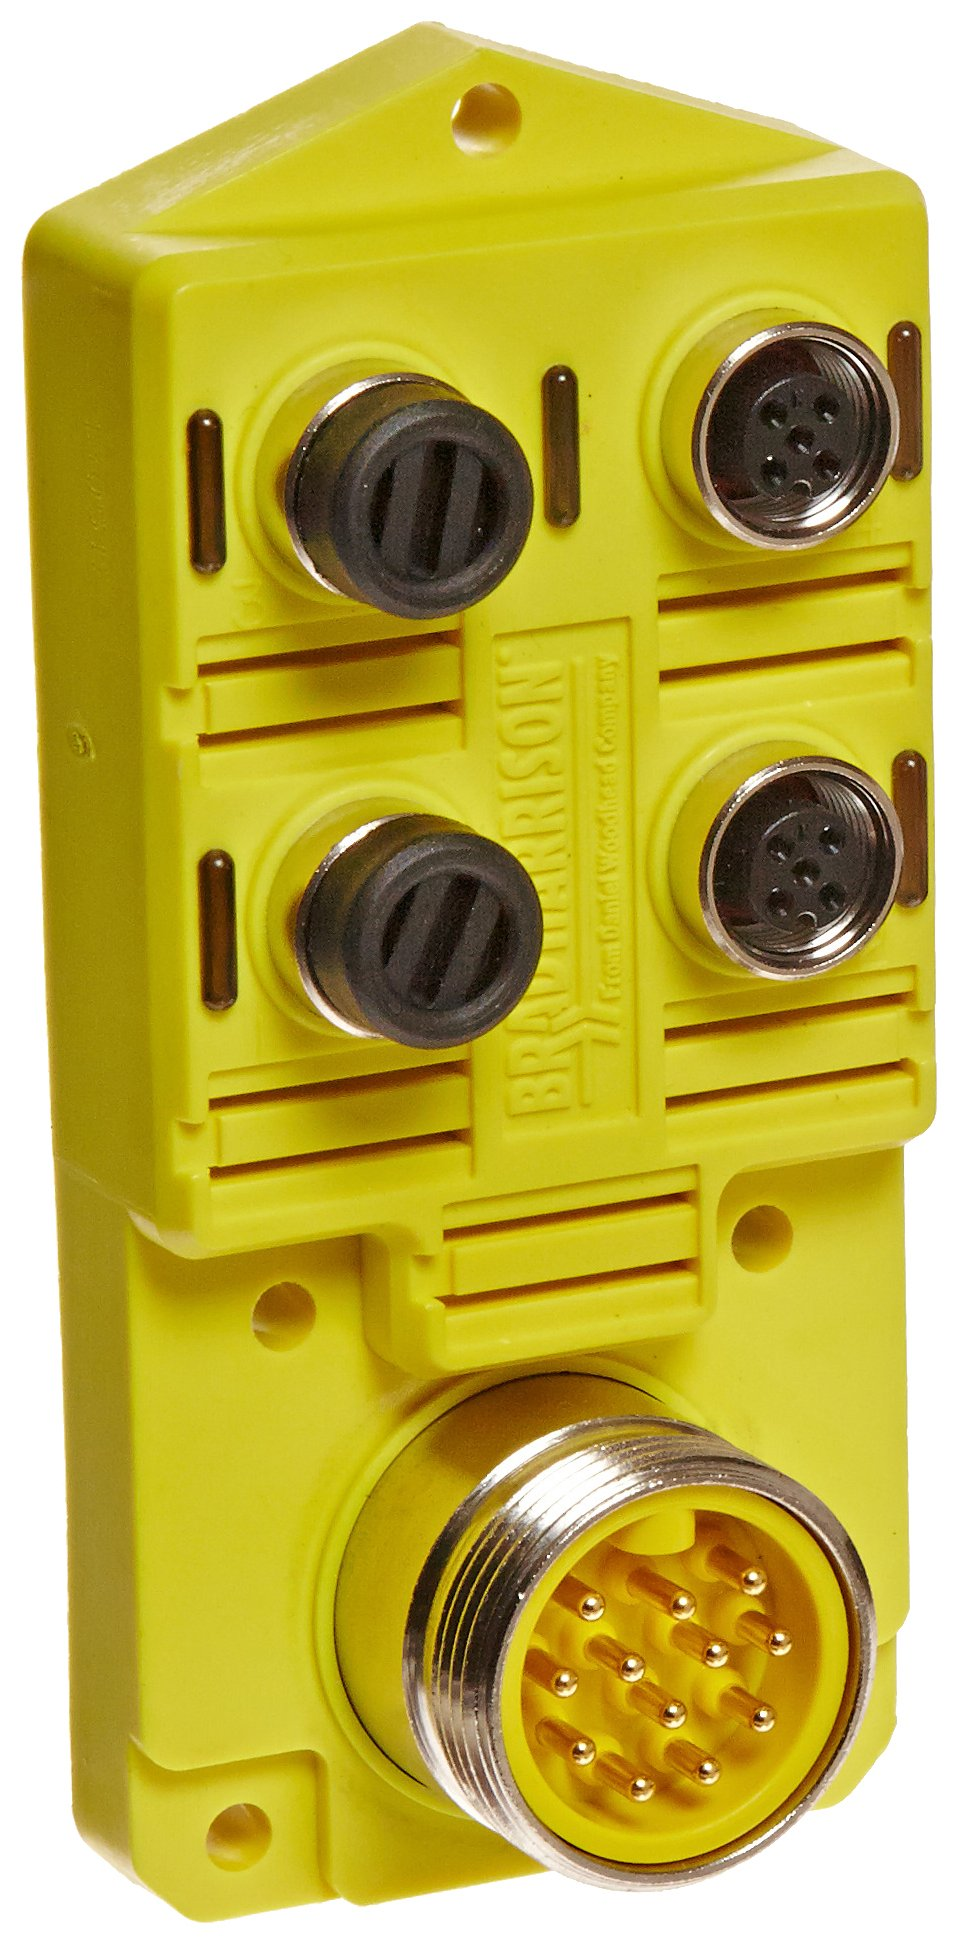 Brad BTY401N-FBB Micro-Change Top Mount Single Wired Port Distribution Box with Brad Mini-Change HR Connector, 10-30V DC Max Voltage, LED Indicator, NPN Sensor, 4 Port